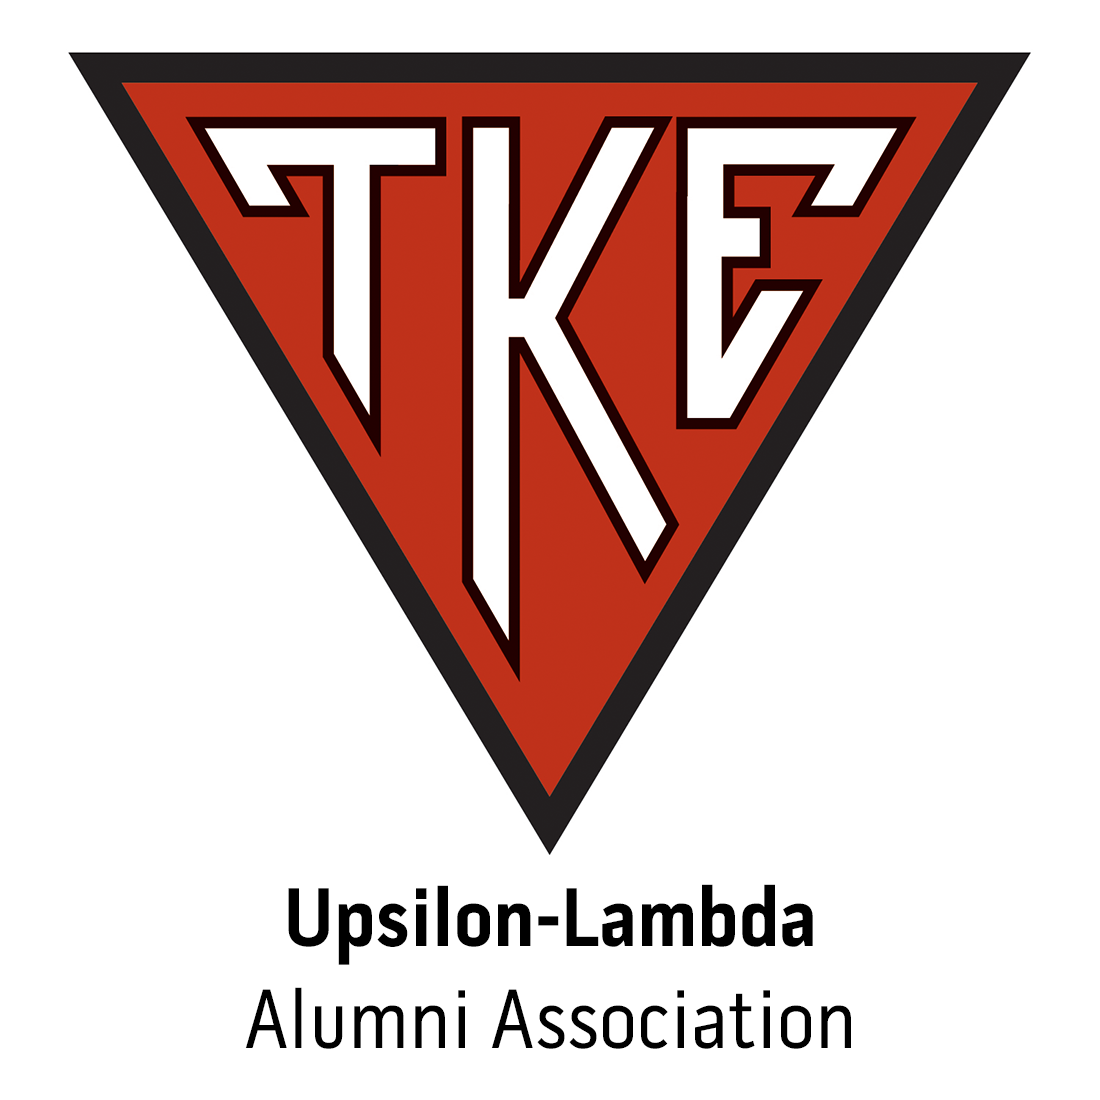 Upsilon-Lambda Alumni Association at College of Staten Island